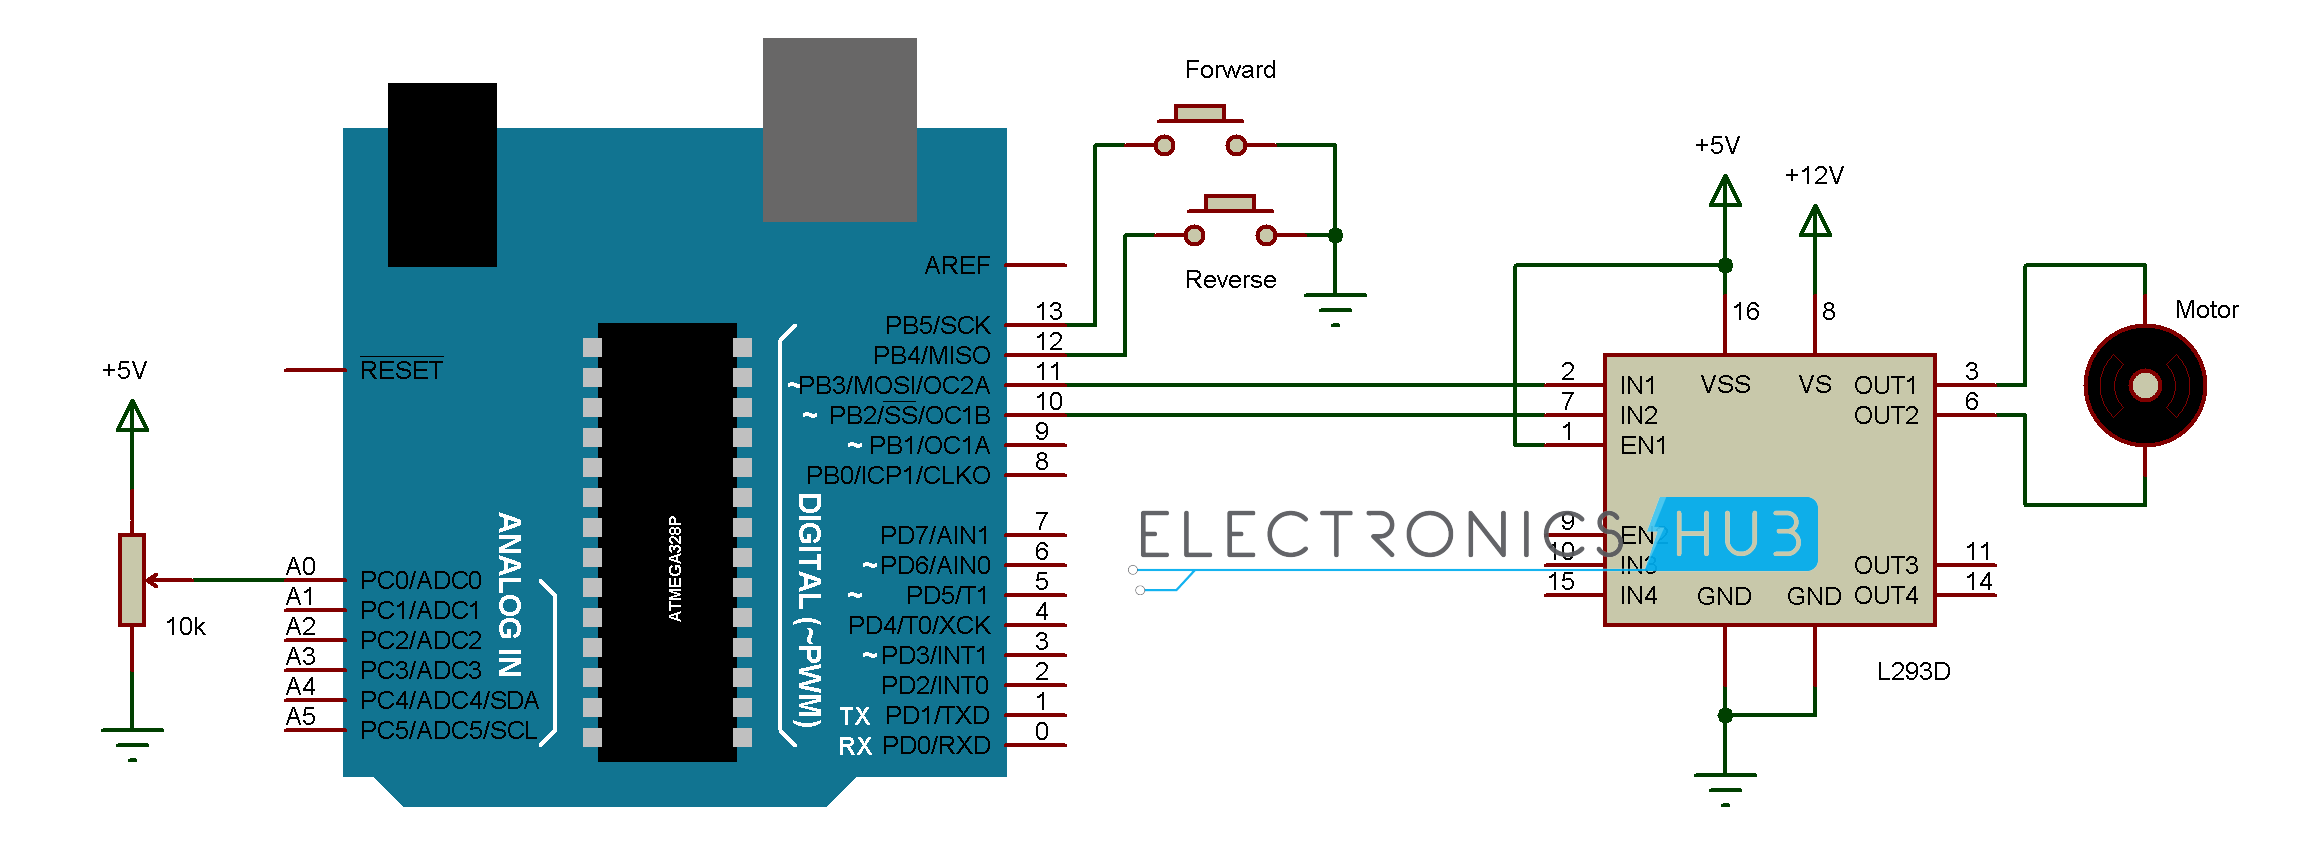 DC Motor Control With Arduino | Arduino | Pinterest | Arduino and ...